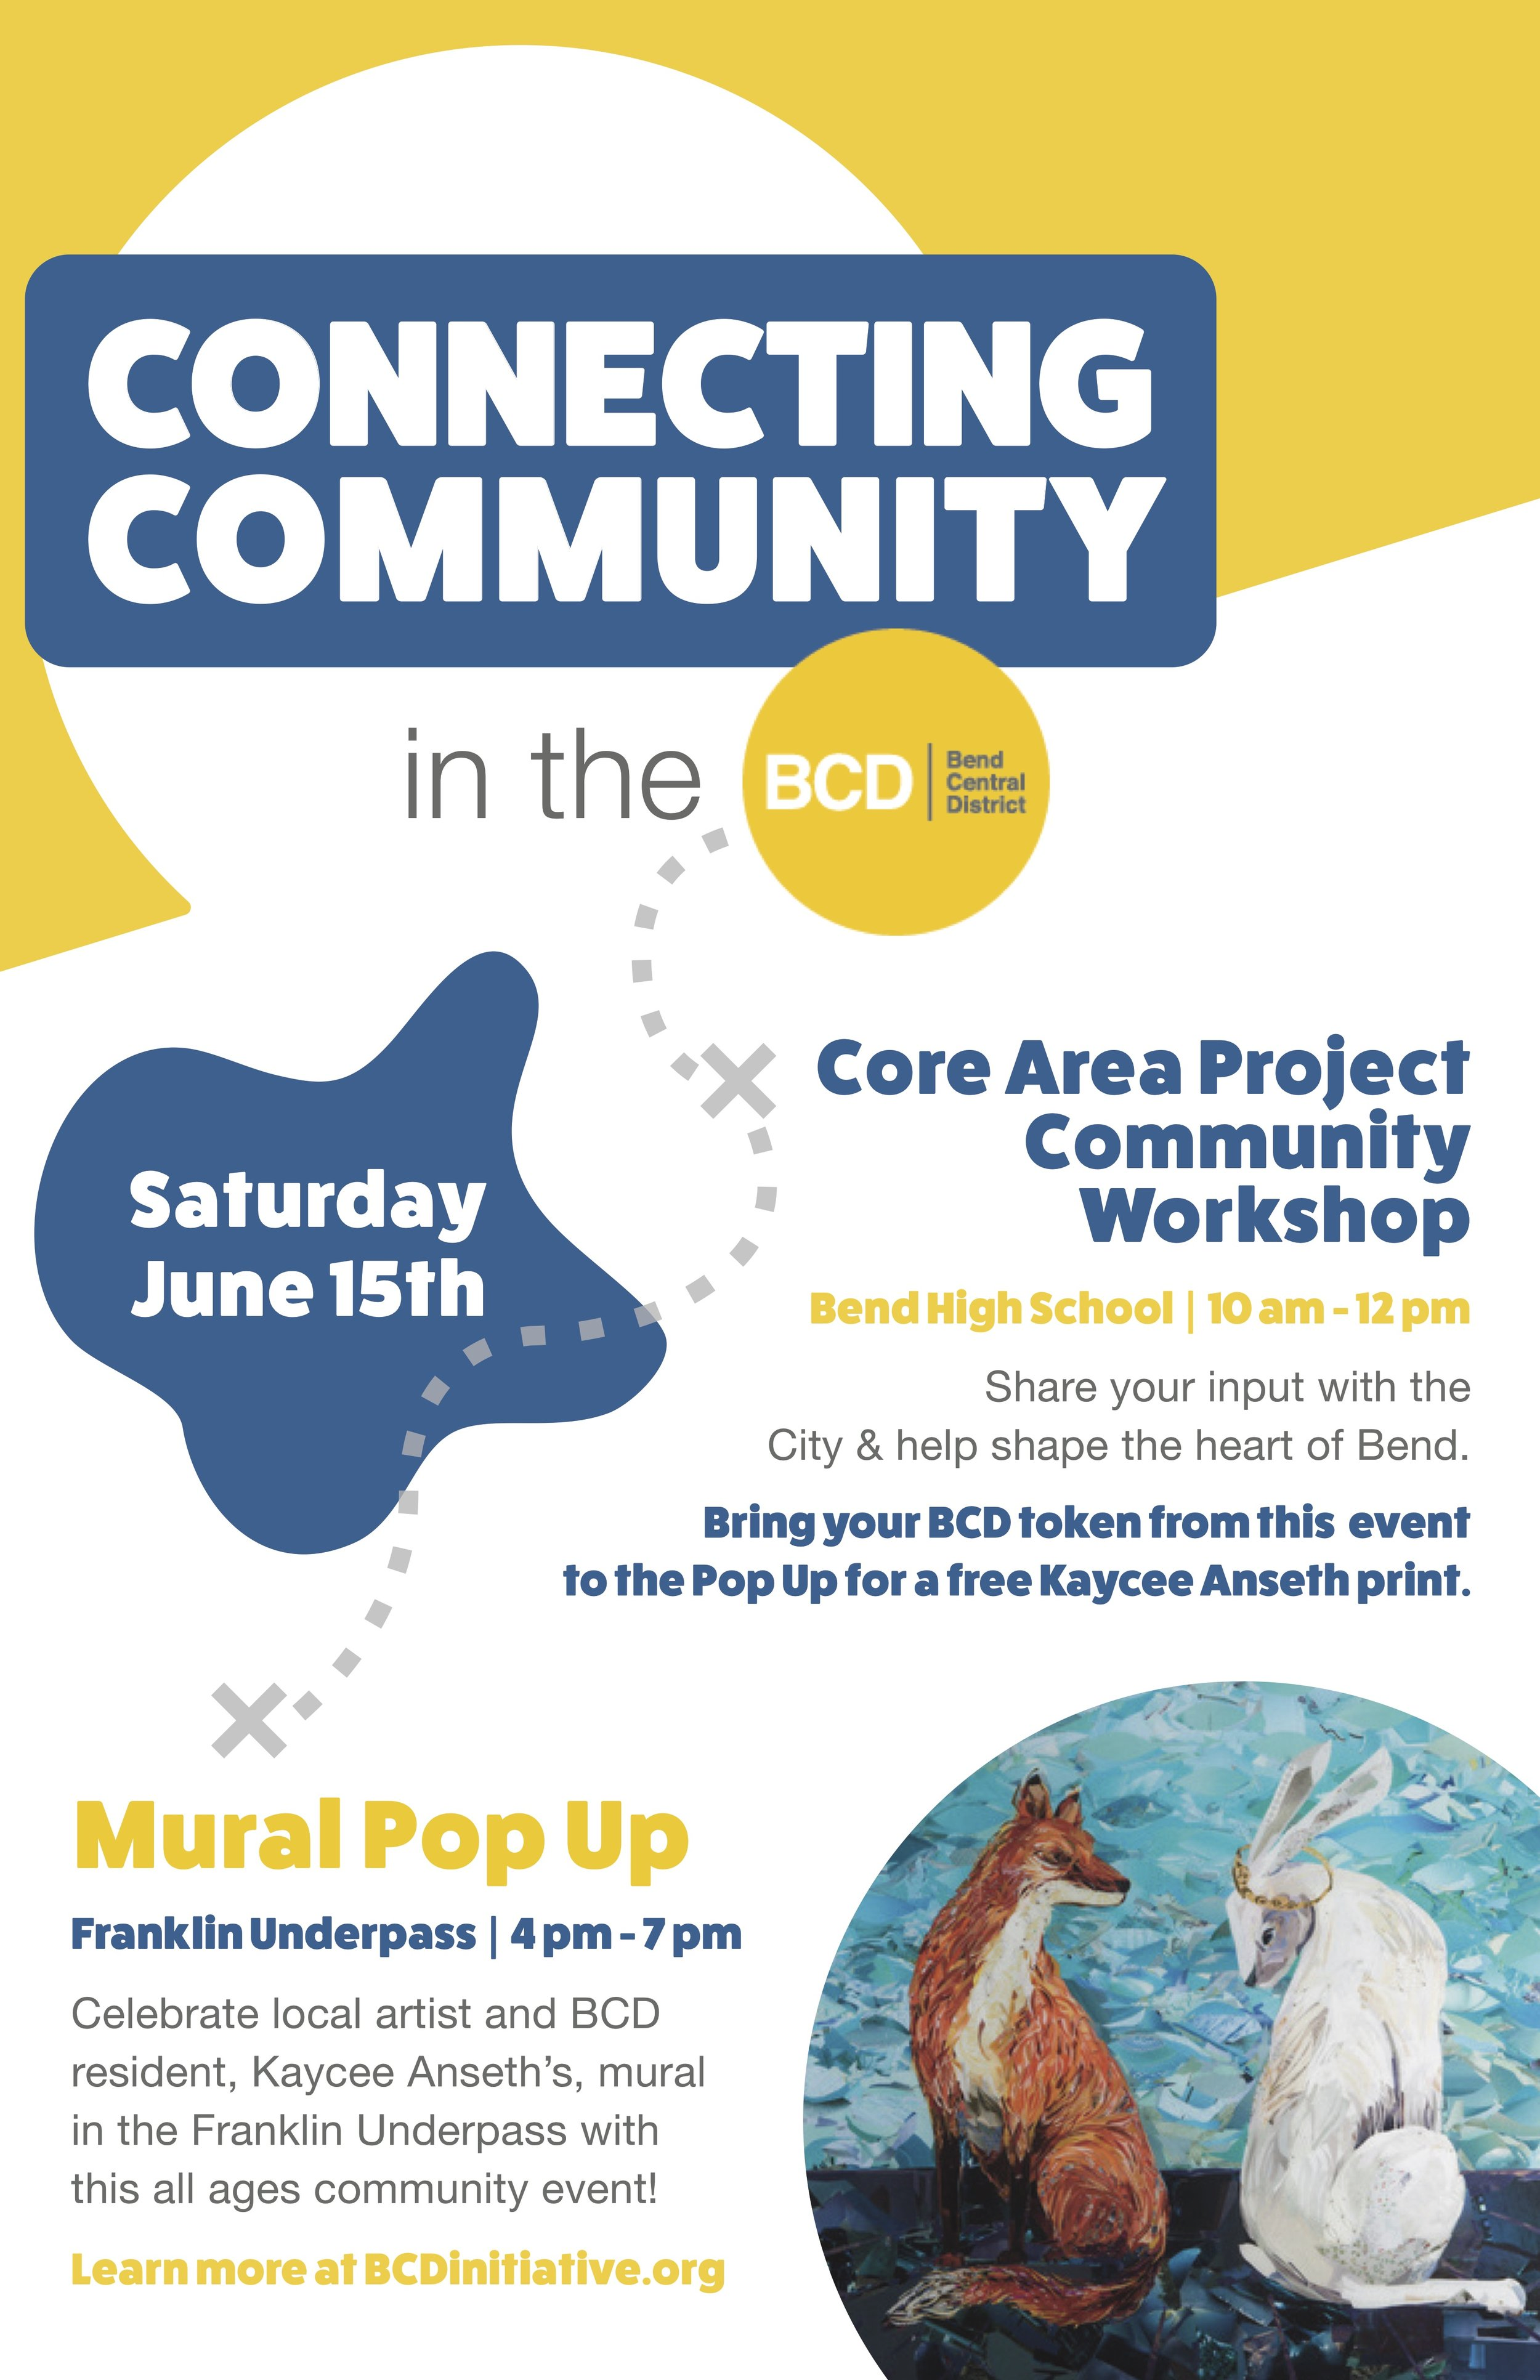 The #ProjectUnderpass Pop Up Event was initially designed to help the community celebrate art installation by Kaycee. Unfortunately the actual installation was postponed, but the community still showed up to the event to share their vision for the area and celebrate the community that does exist there.